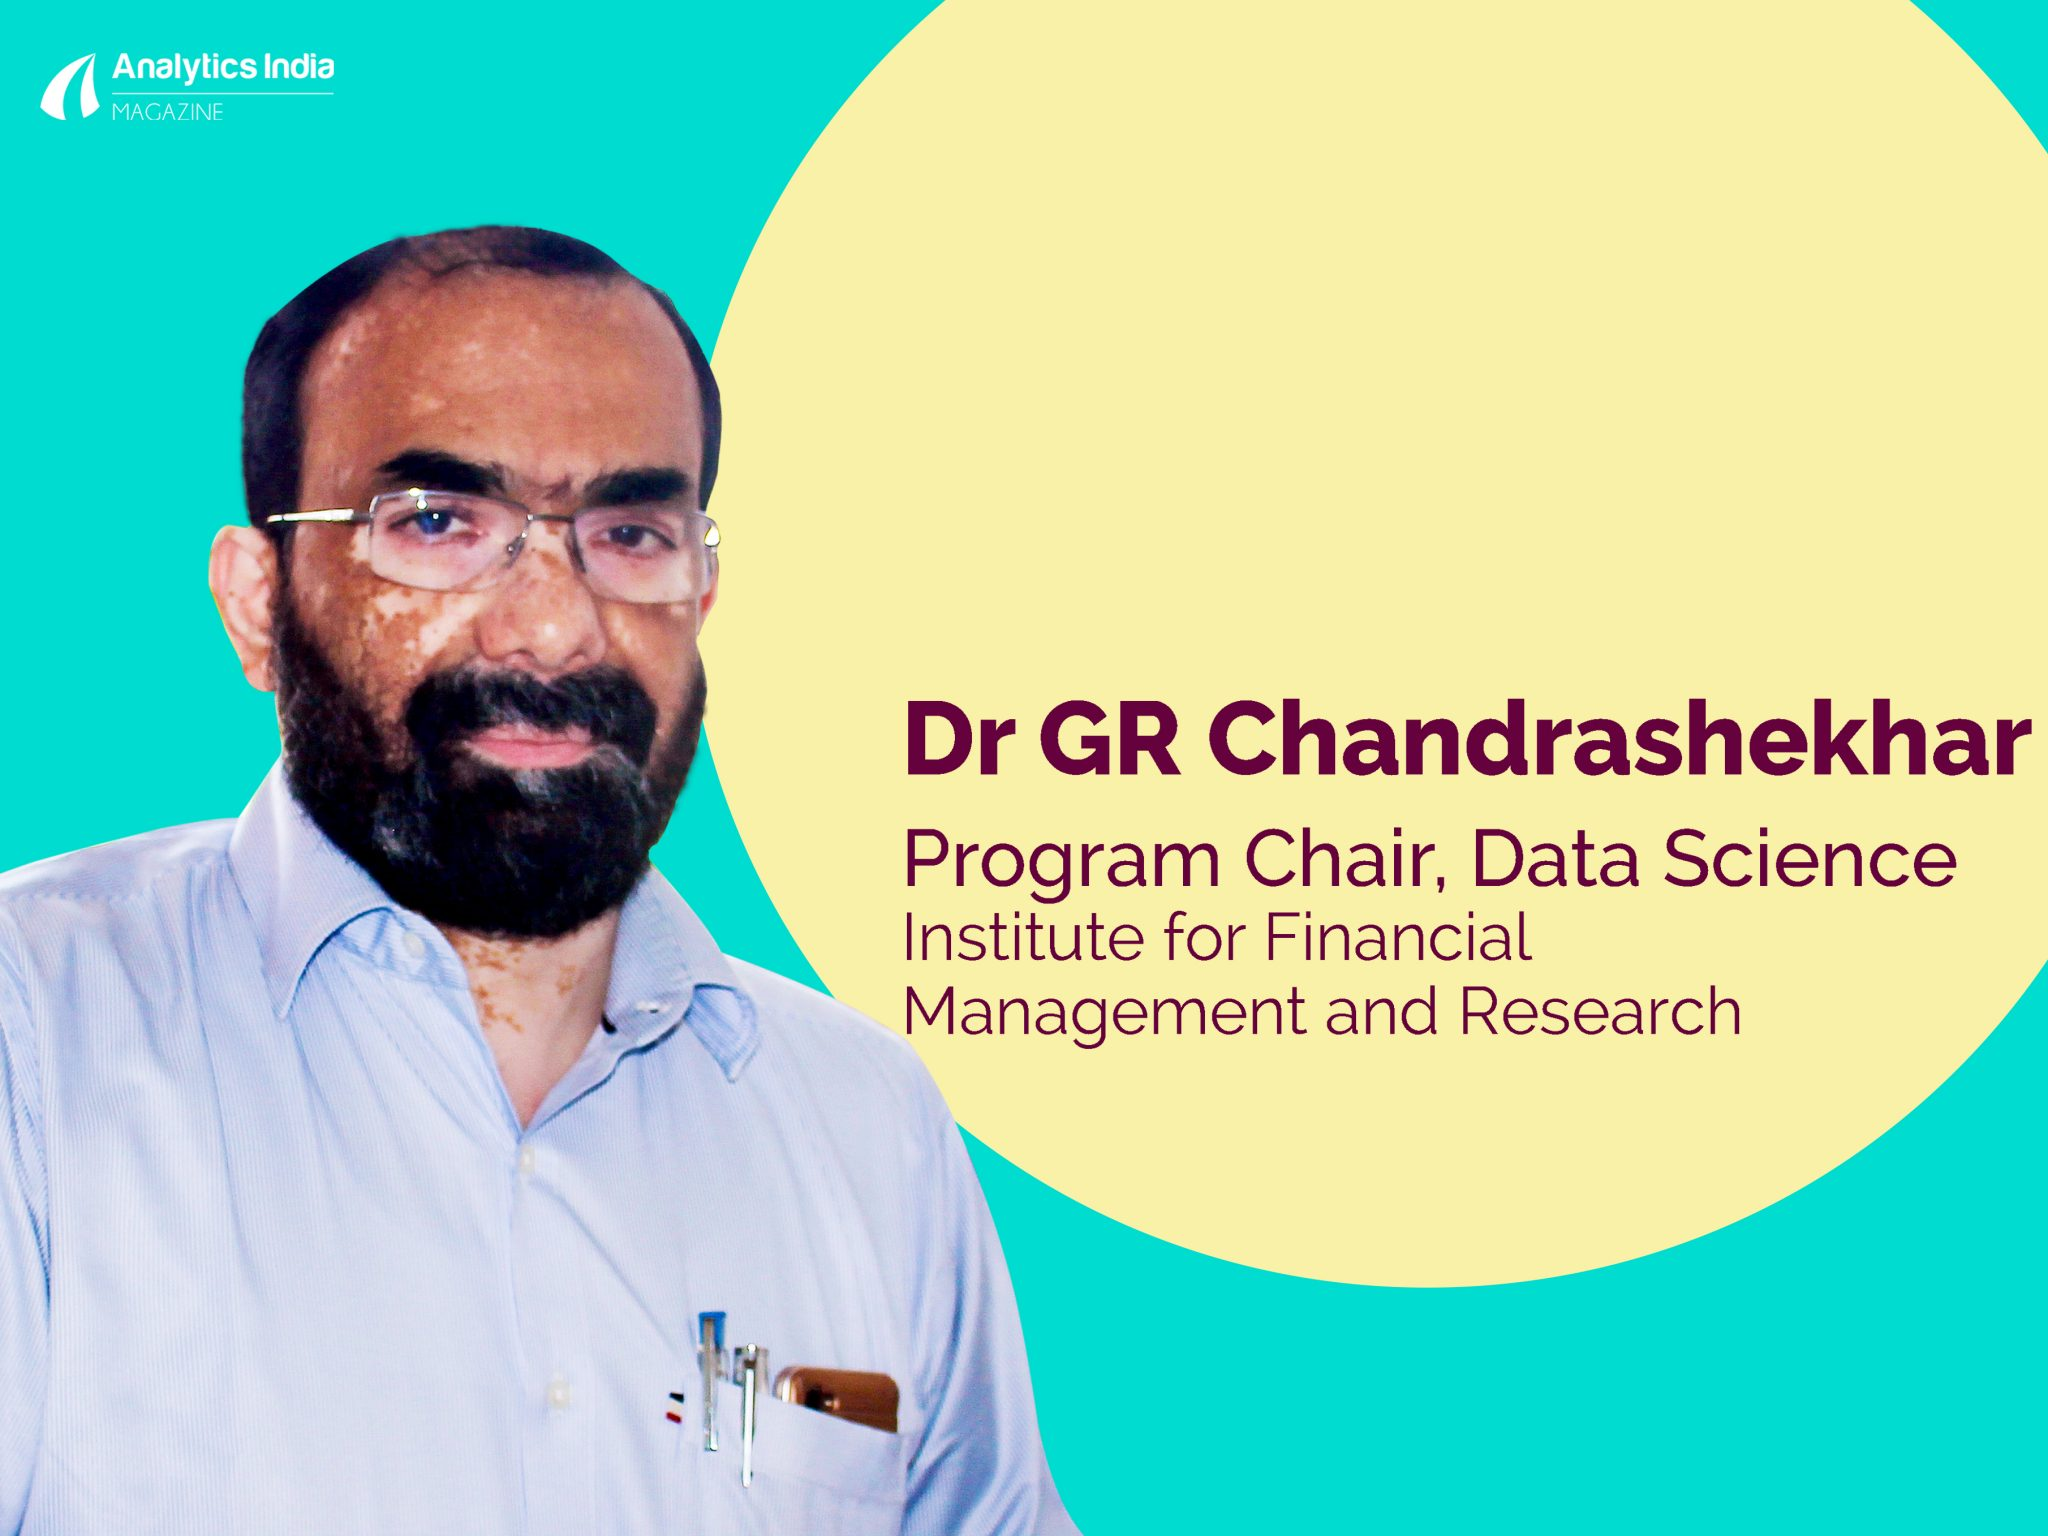 IFMR Program Chair Dr GR Chandrashekhar